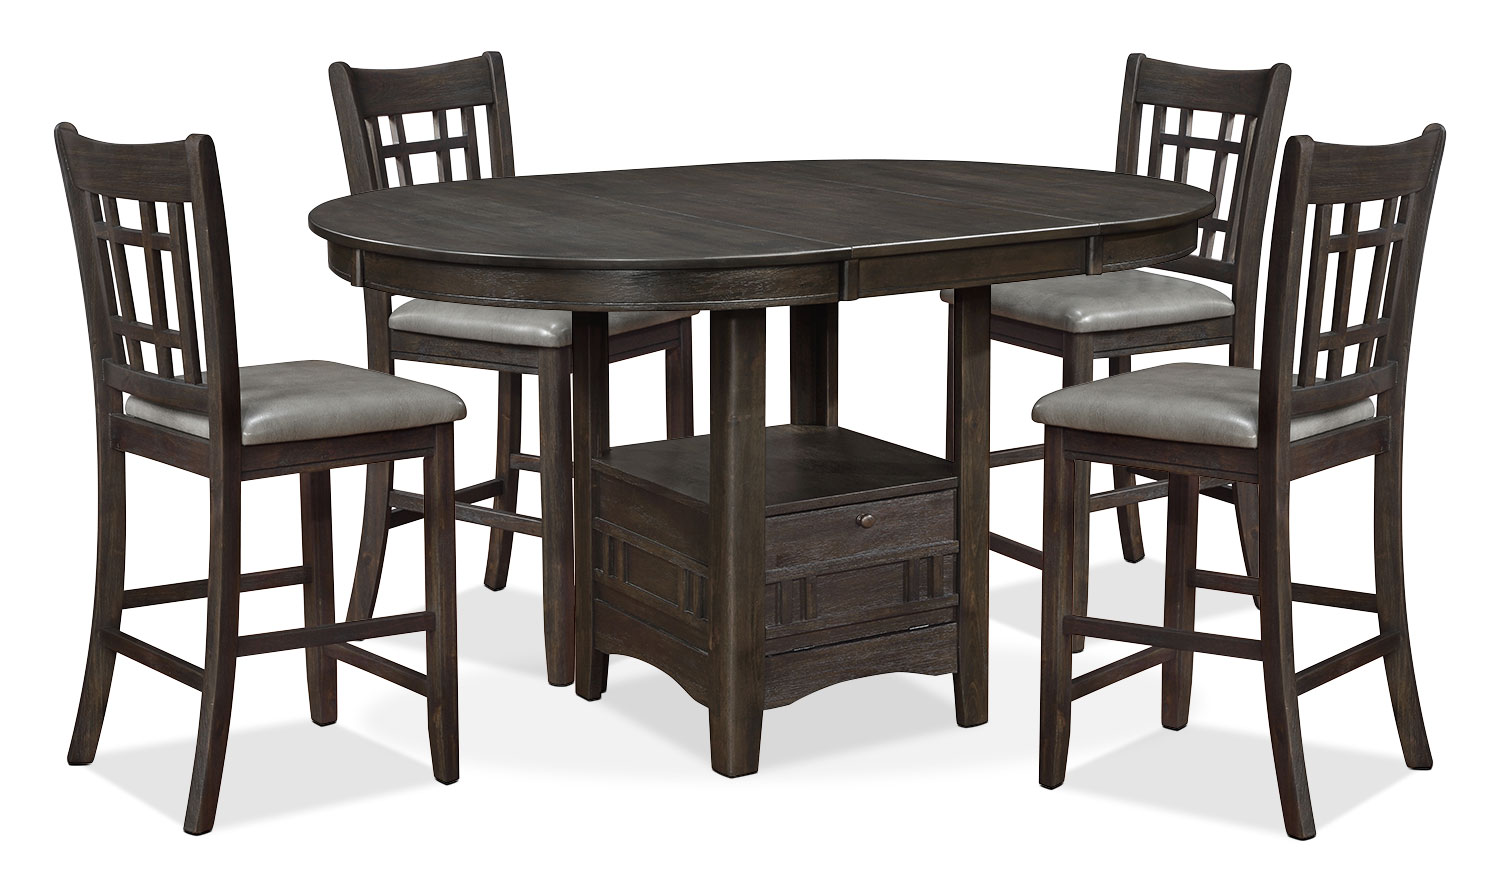 Dining Room Furniture - Dana 5-Piece Counter-Height Dining Package